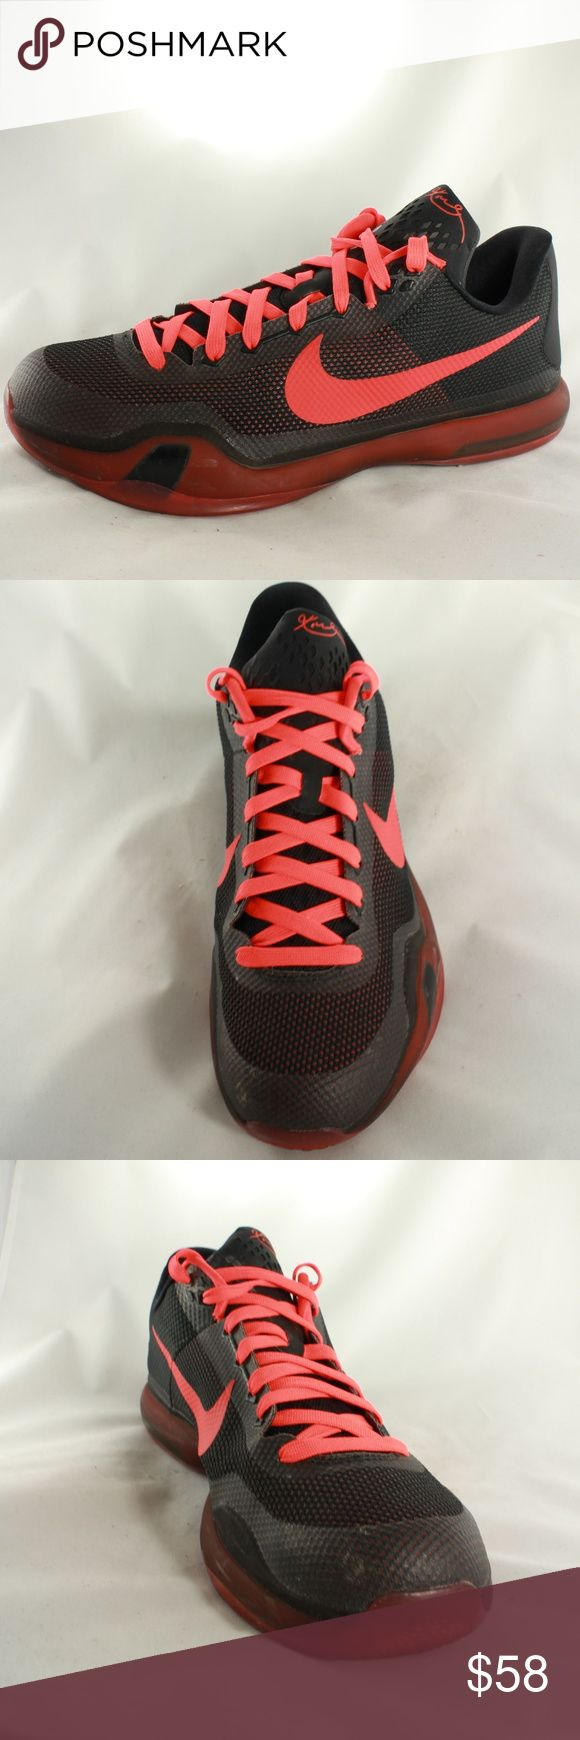 Nike Air Zoom Kobe Bryant X 10 Low Black Crimson Excellent condition Nike Kobe series low tops. Discontinued series. upper is like new. Laces and swoosh are a bright crimson red. Insole is super clean, only the sticker on the insole pad is worn off. Sole is grippy with minimal wear. Upper is 10/10 condition, sole is 9.5/10.  Size 13 Nike Shoes Sneakers